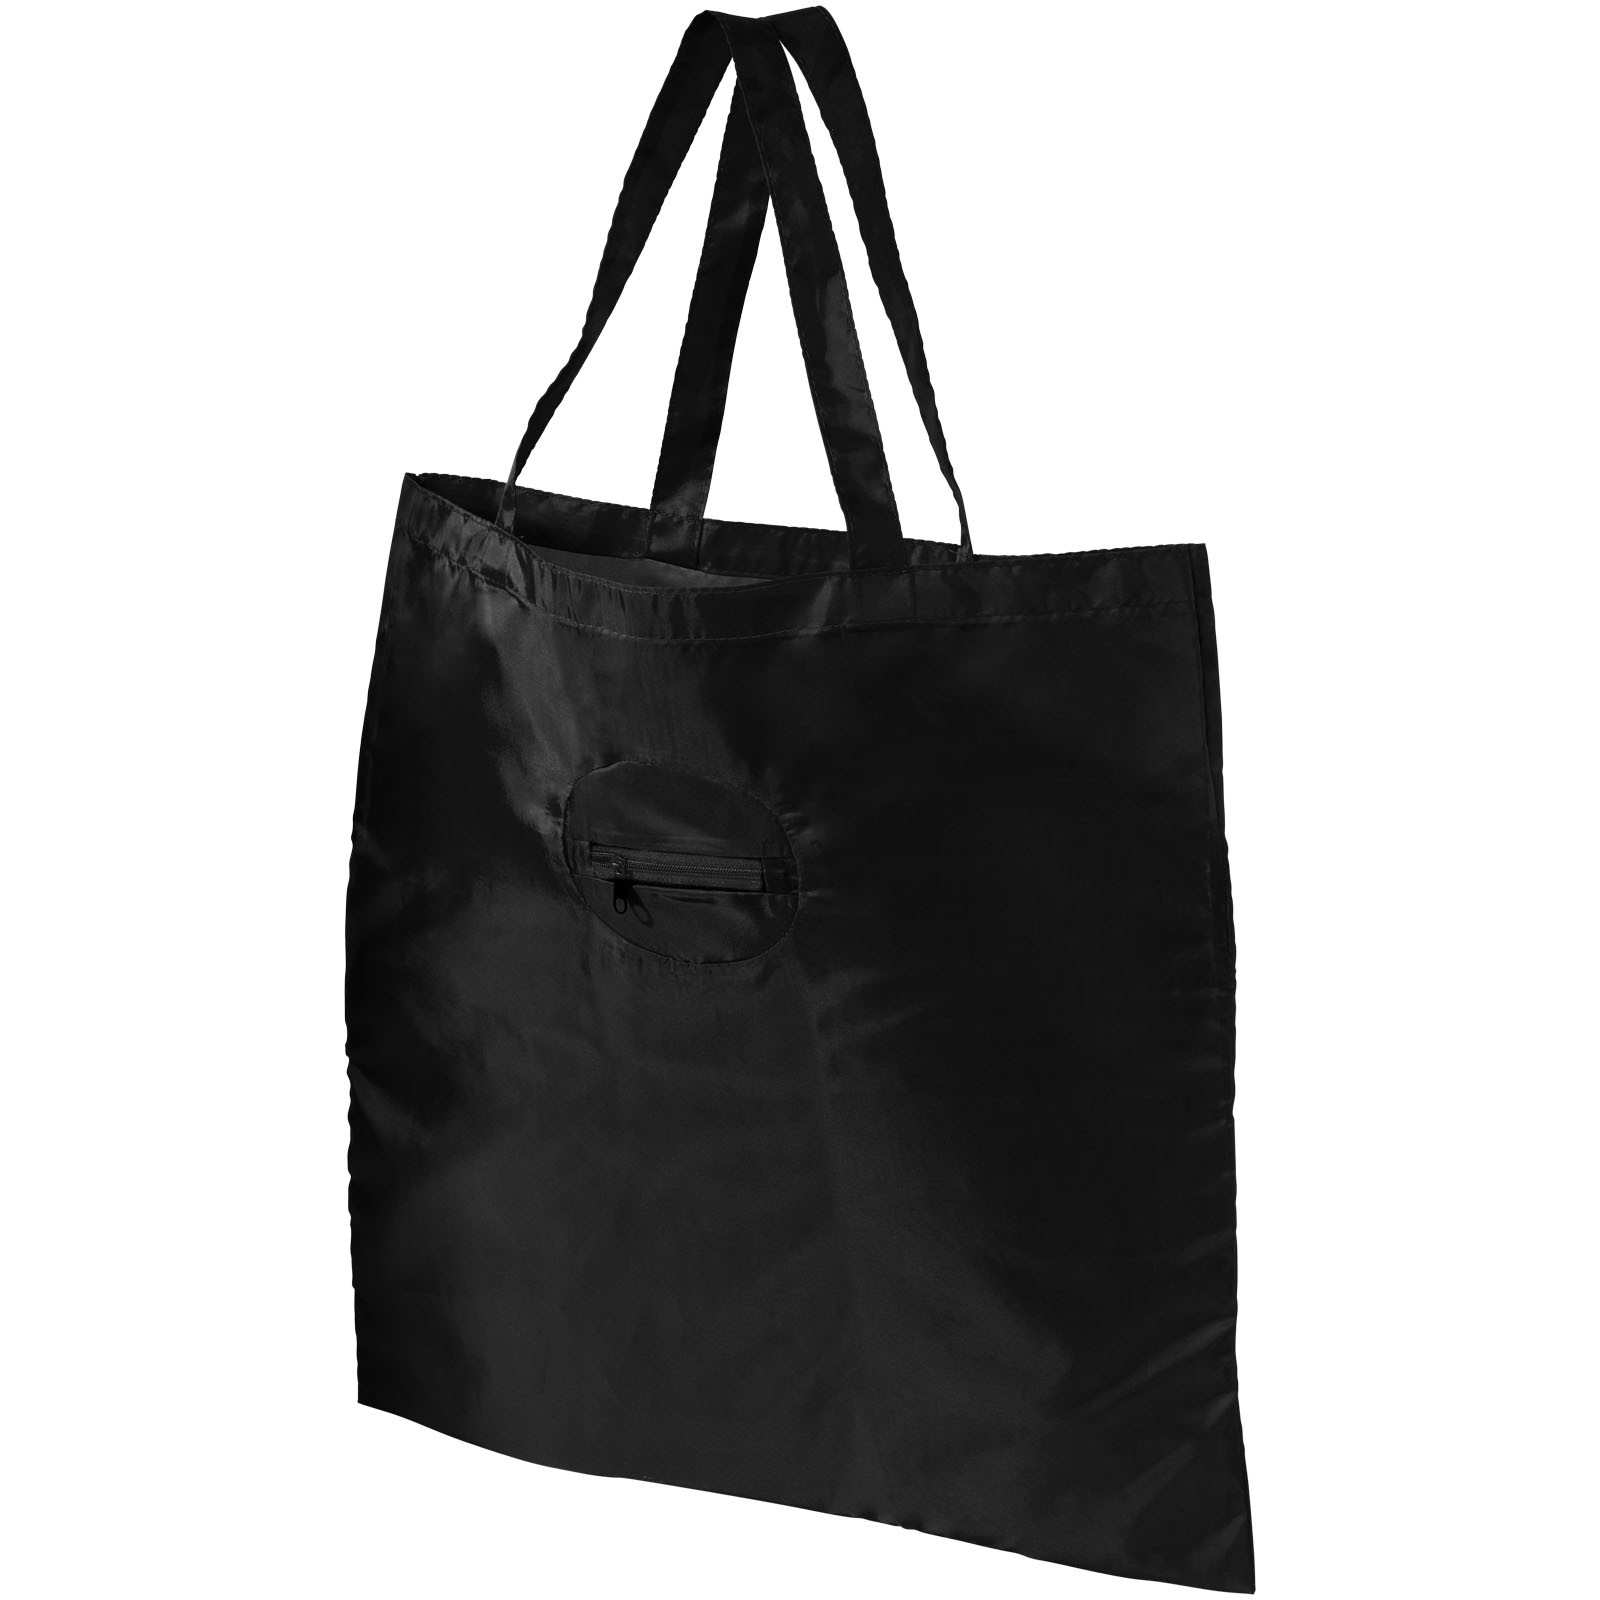 Take-away foldable shopping tote bag with keychain - Solid black